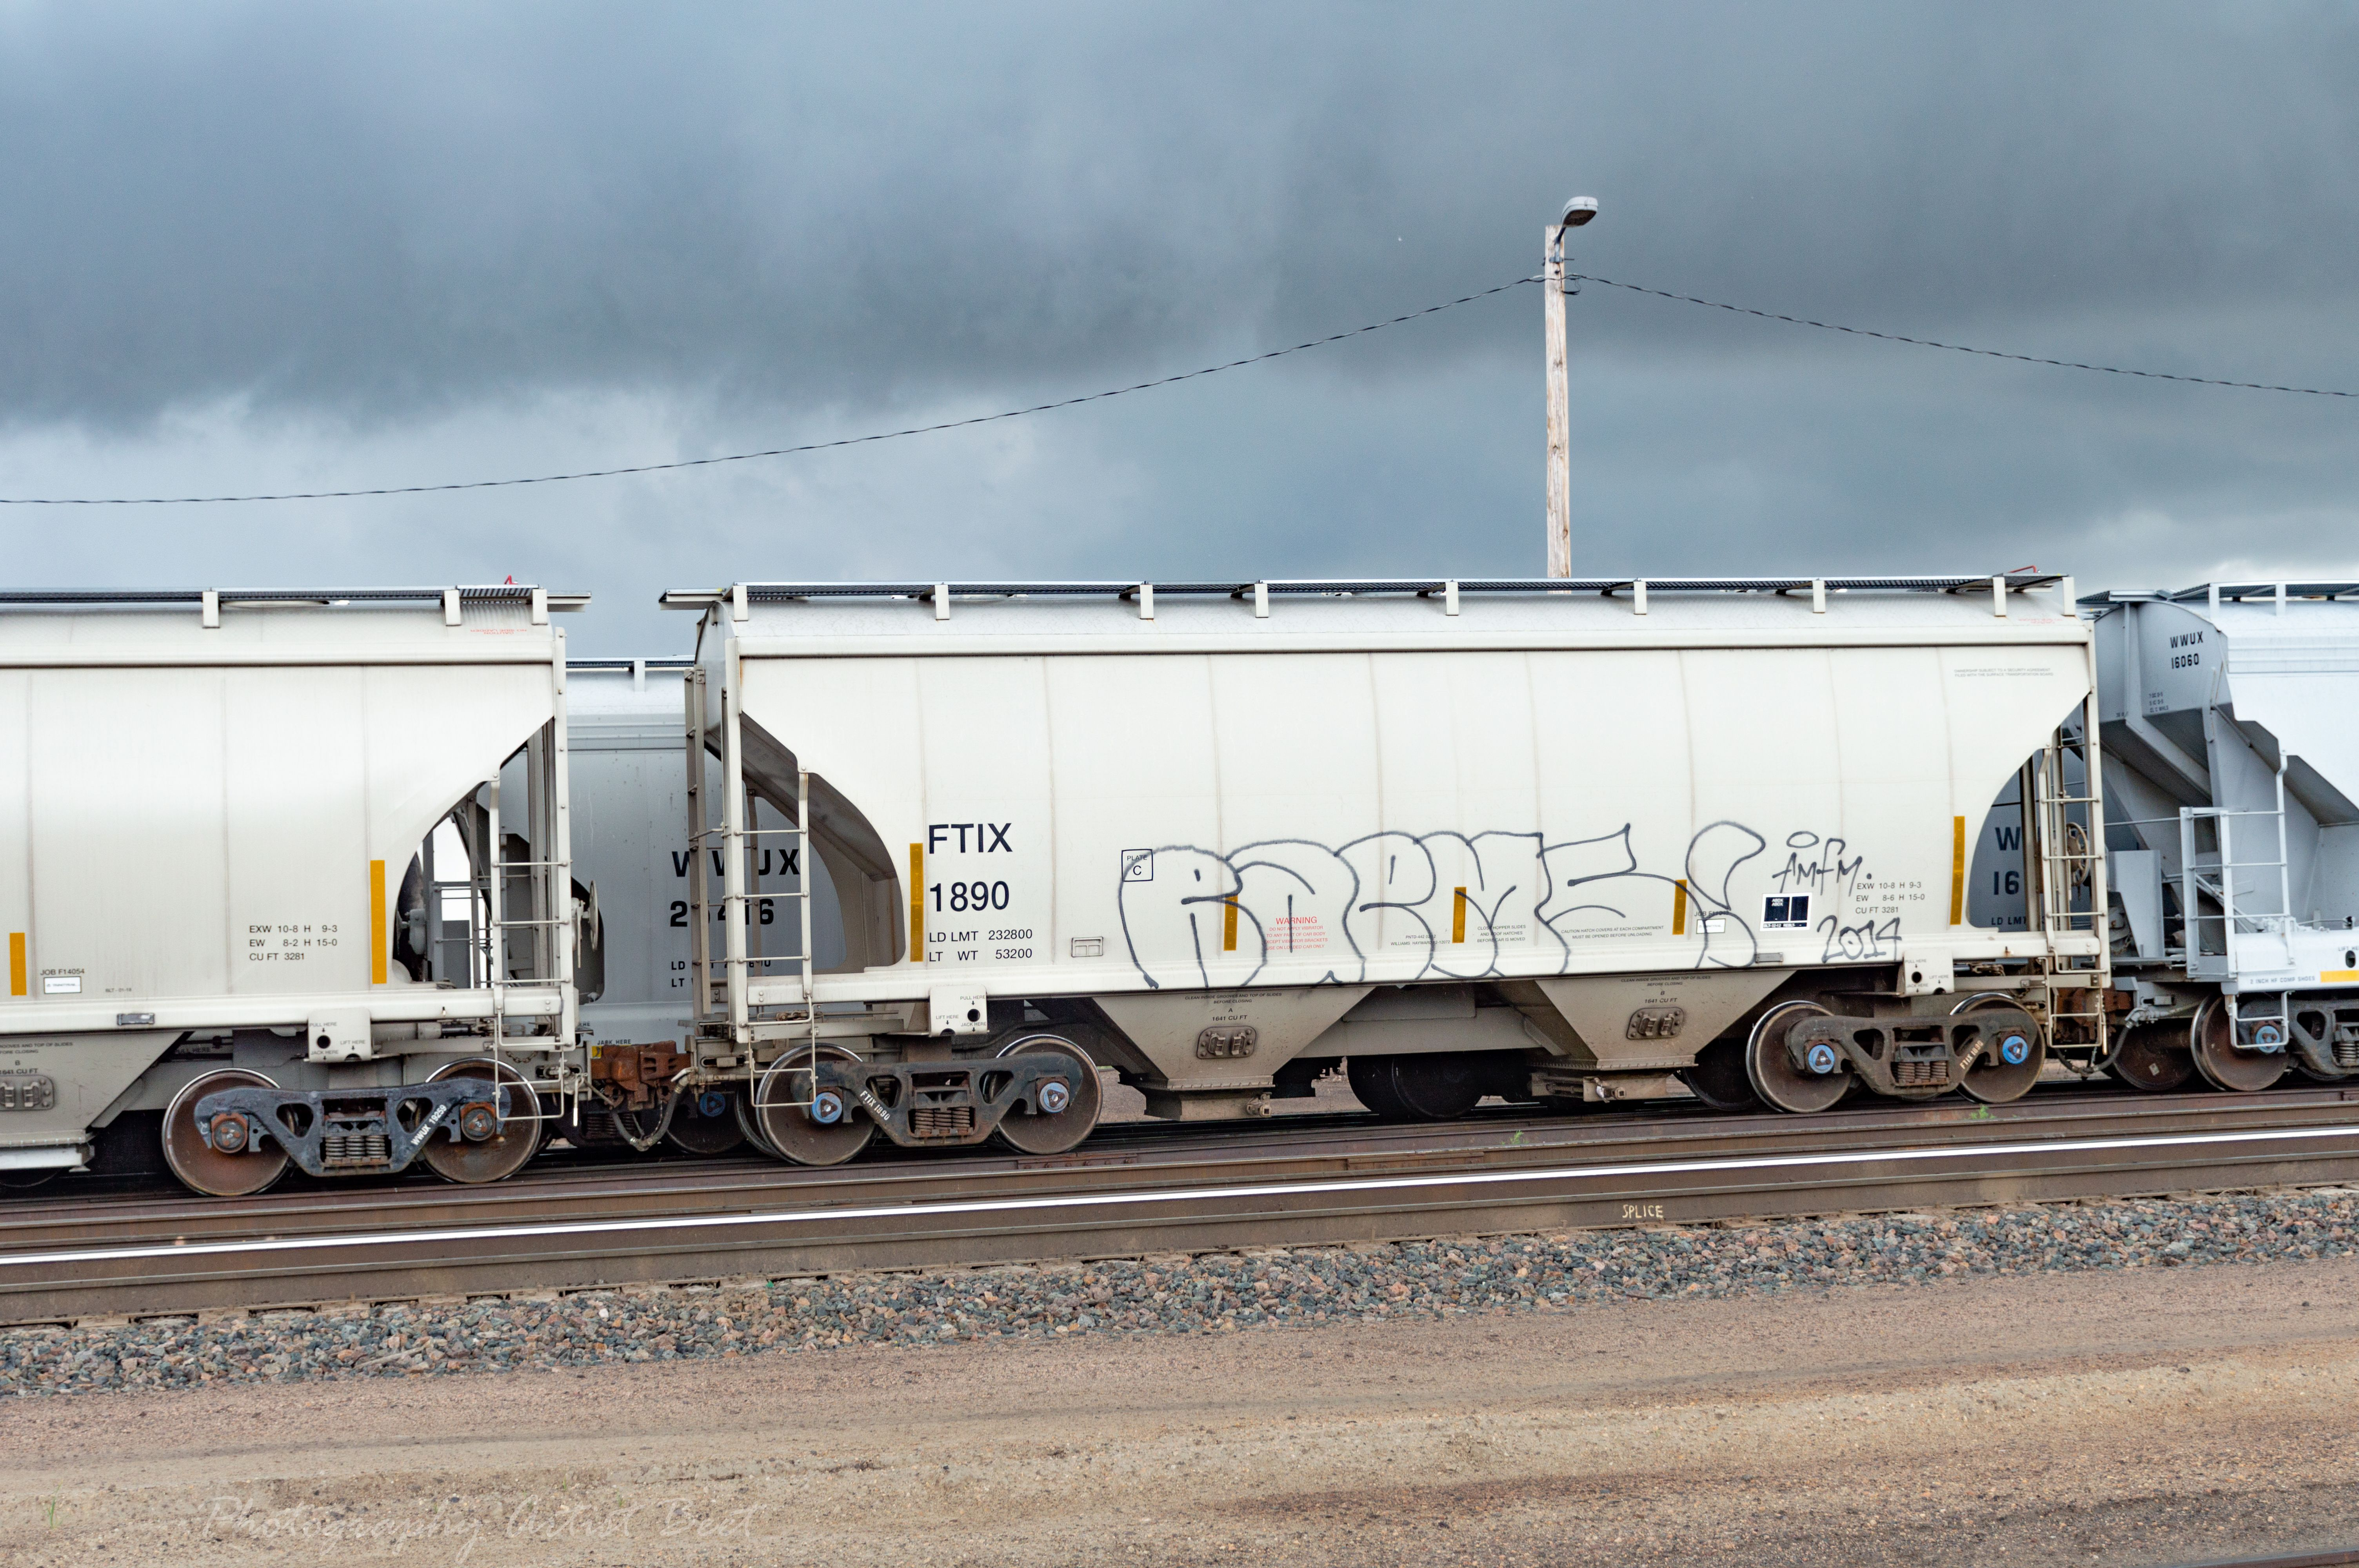 Rain Storm Hit Just After Reaching The Rail Yard Just Look At The